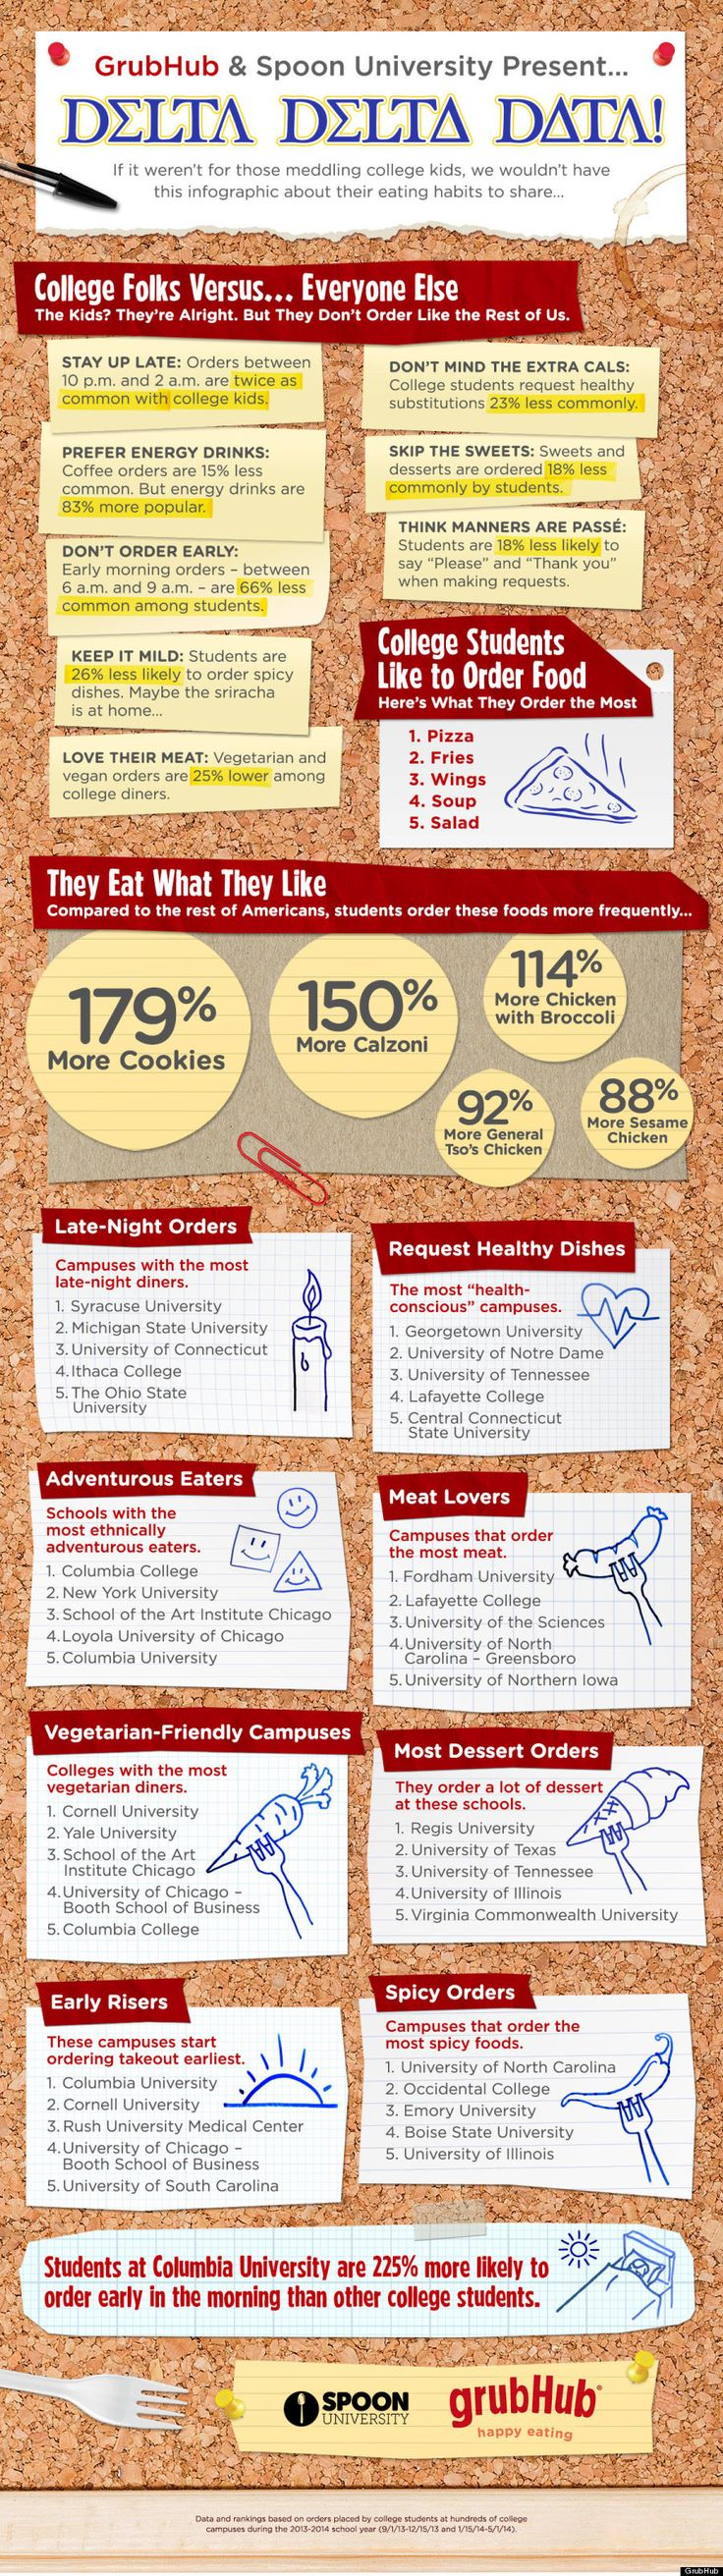 How College Students Order Food (INFOGRAPHIC) #CUdining #foodservice #collegedining